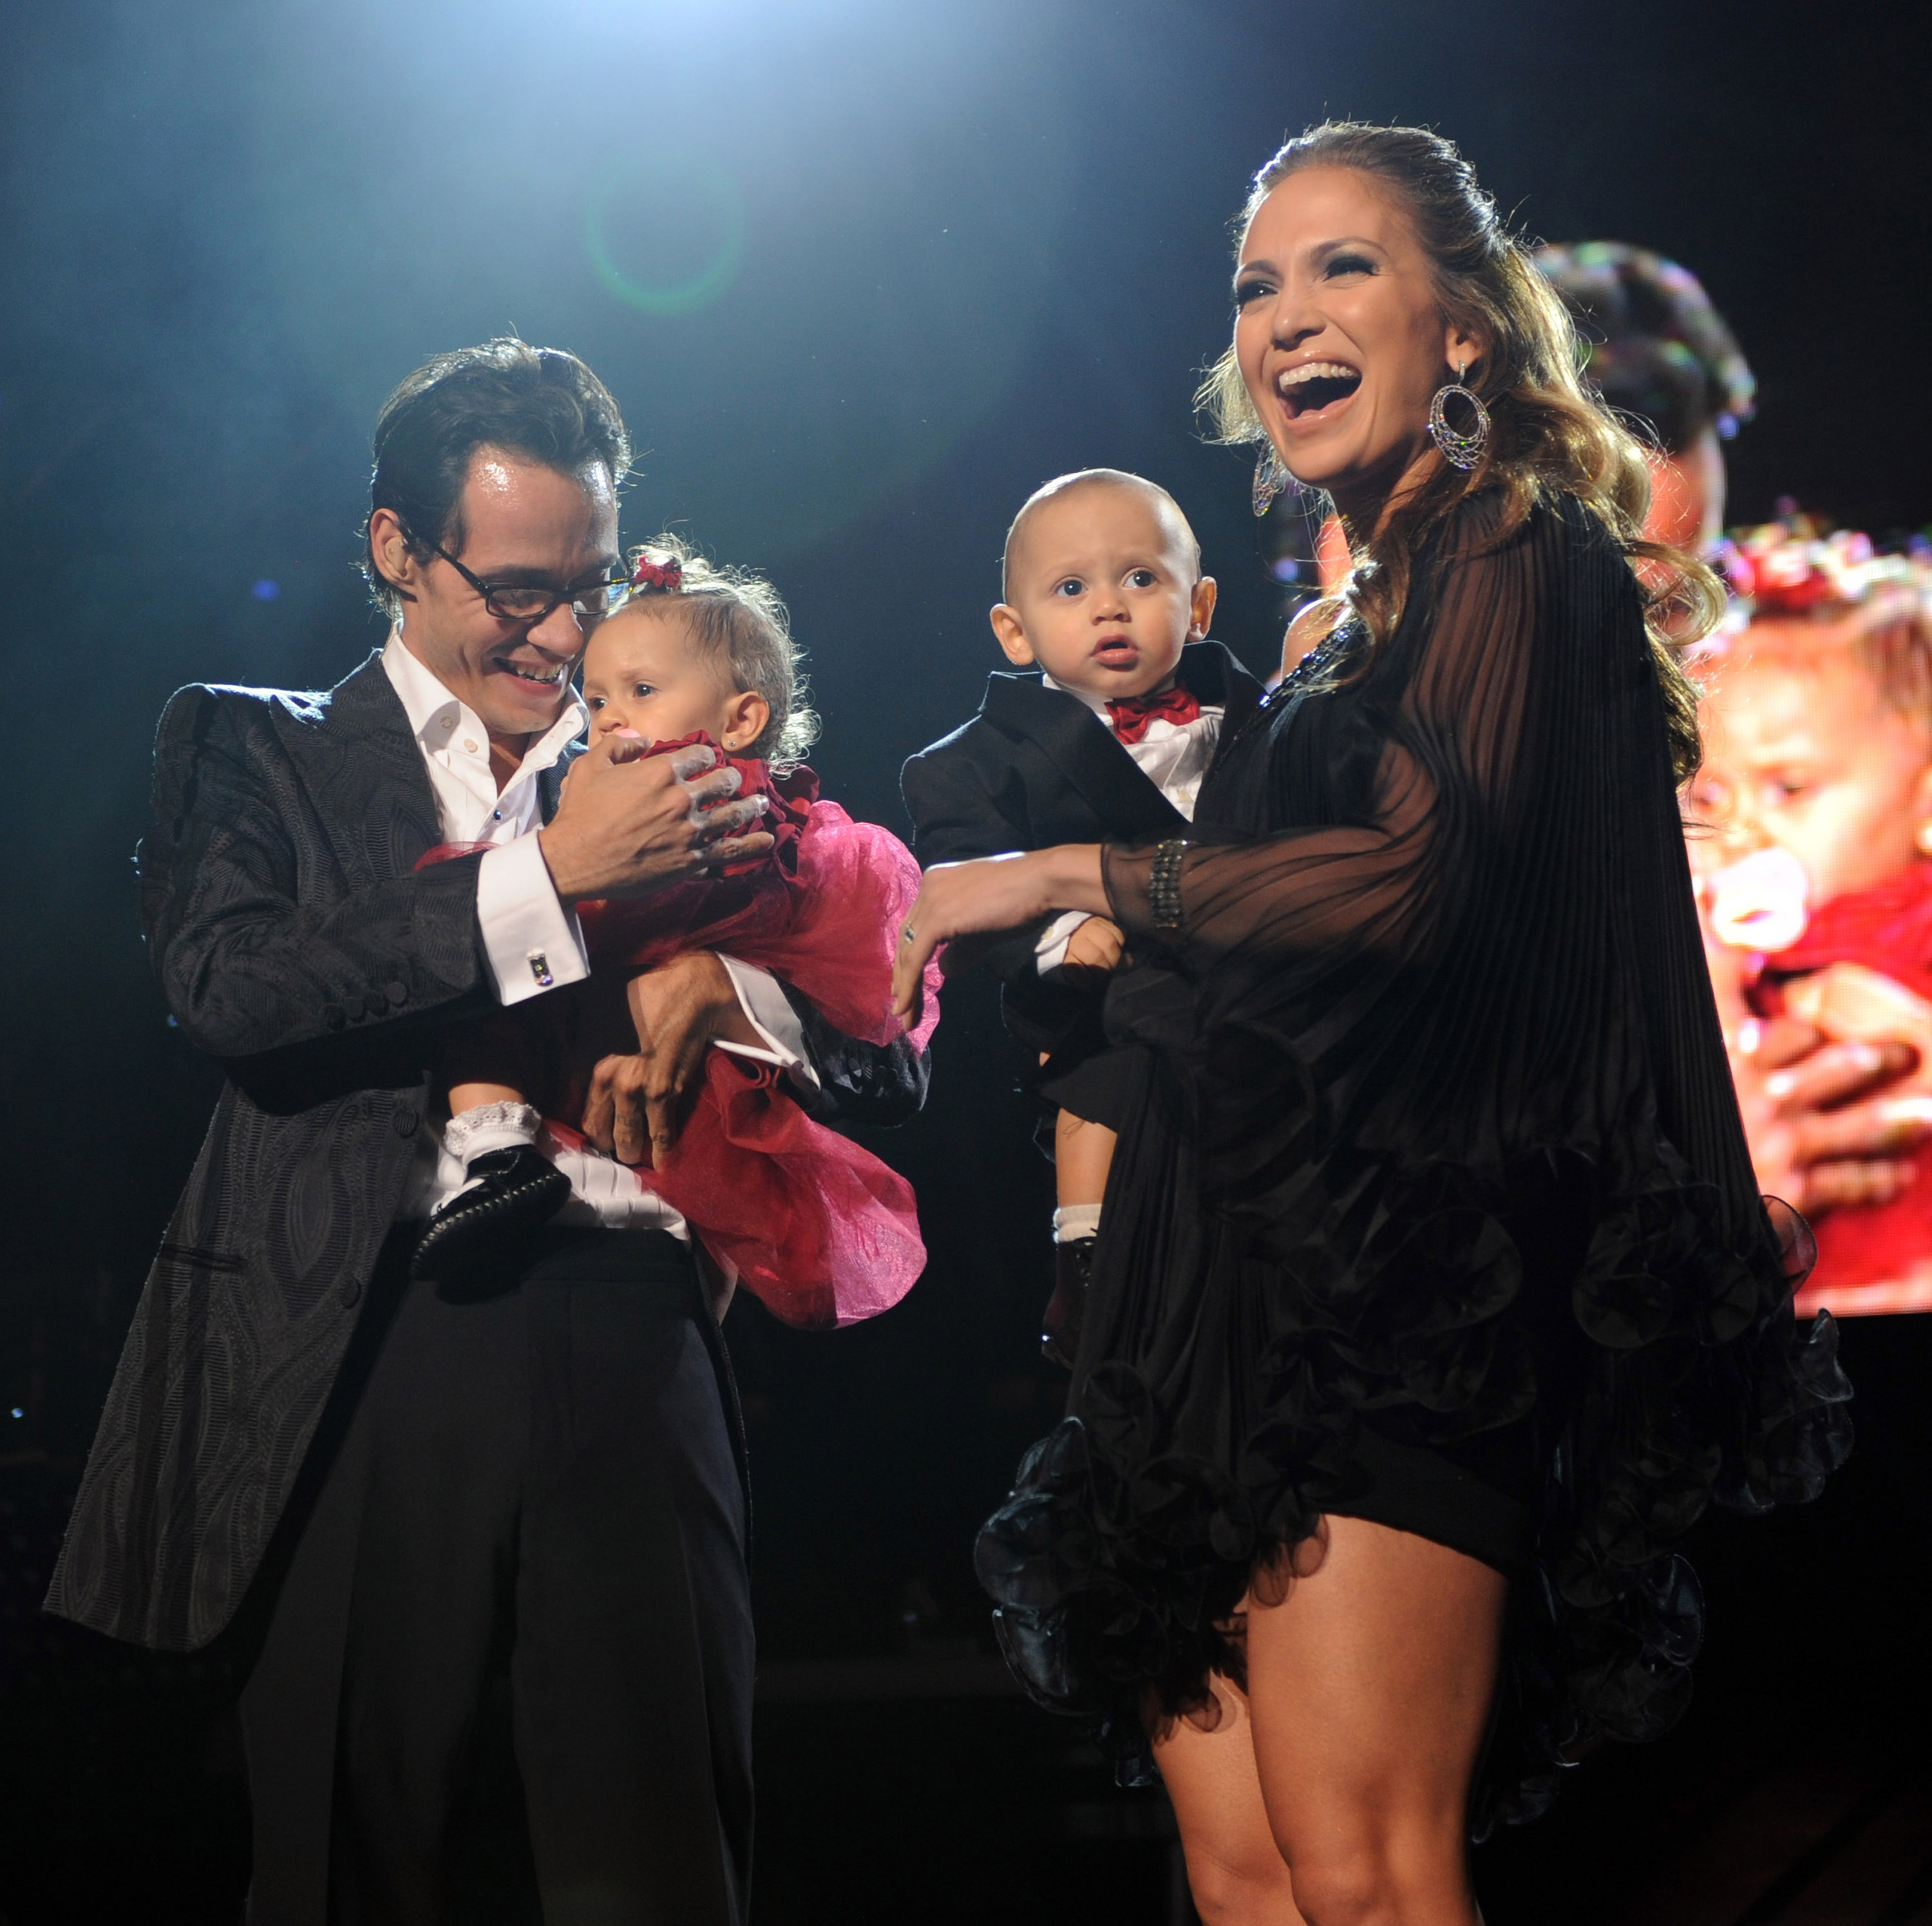 Marc Anthony Performs Valentine's Day Show At Madison Square Garden